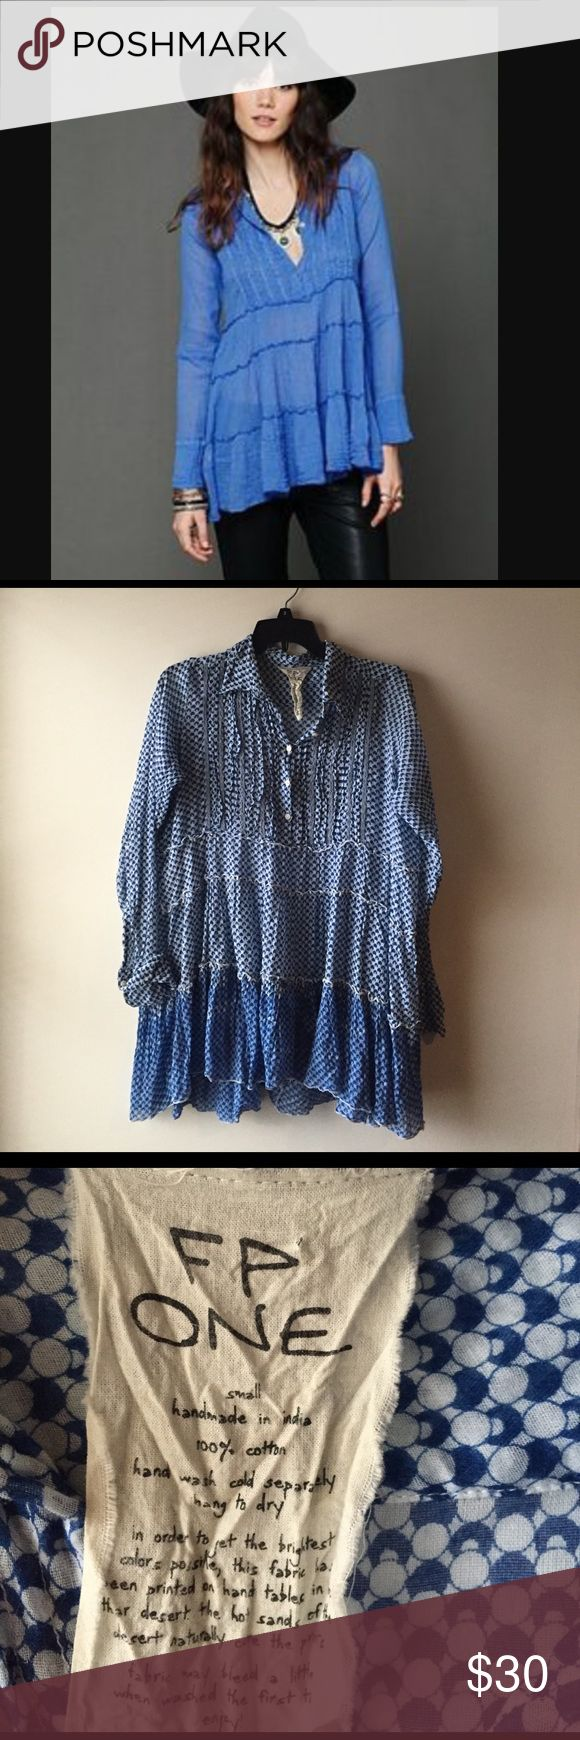 Free People tunic  🔷 EUC Free People FP One 100% cotton long sleeve patterned ombré  button up tuxedo tunic, light weight and flowy 🔷 Free People Tops Tunics